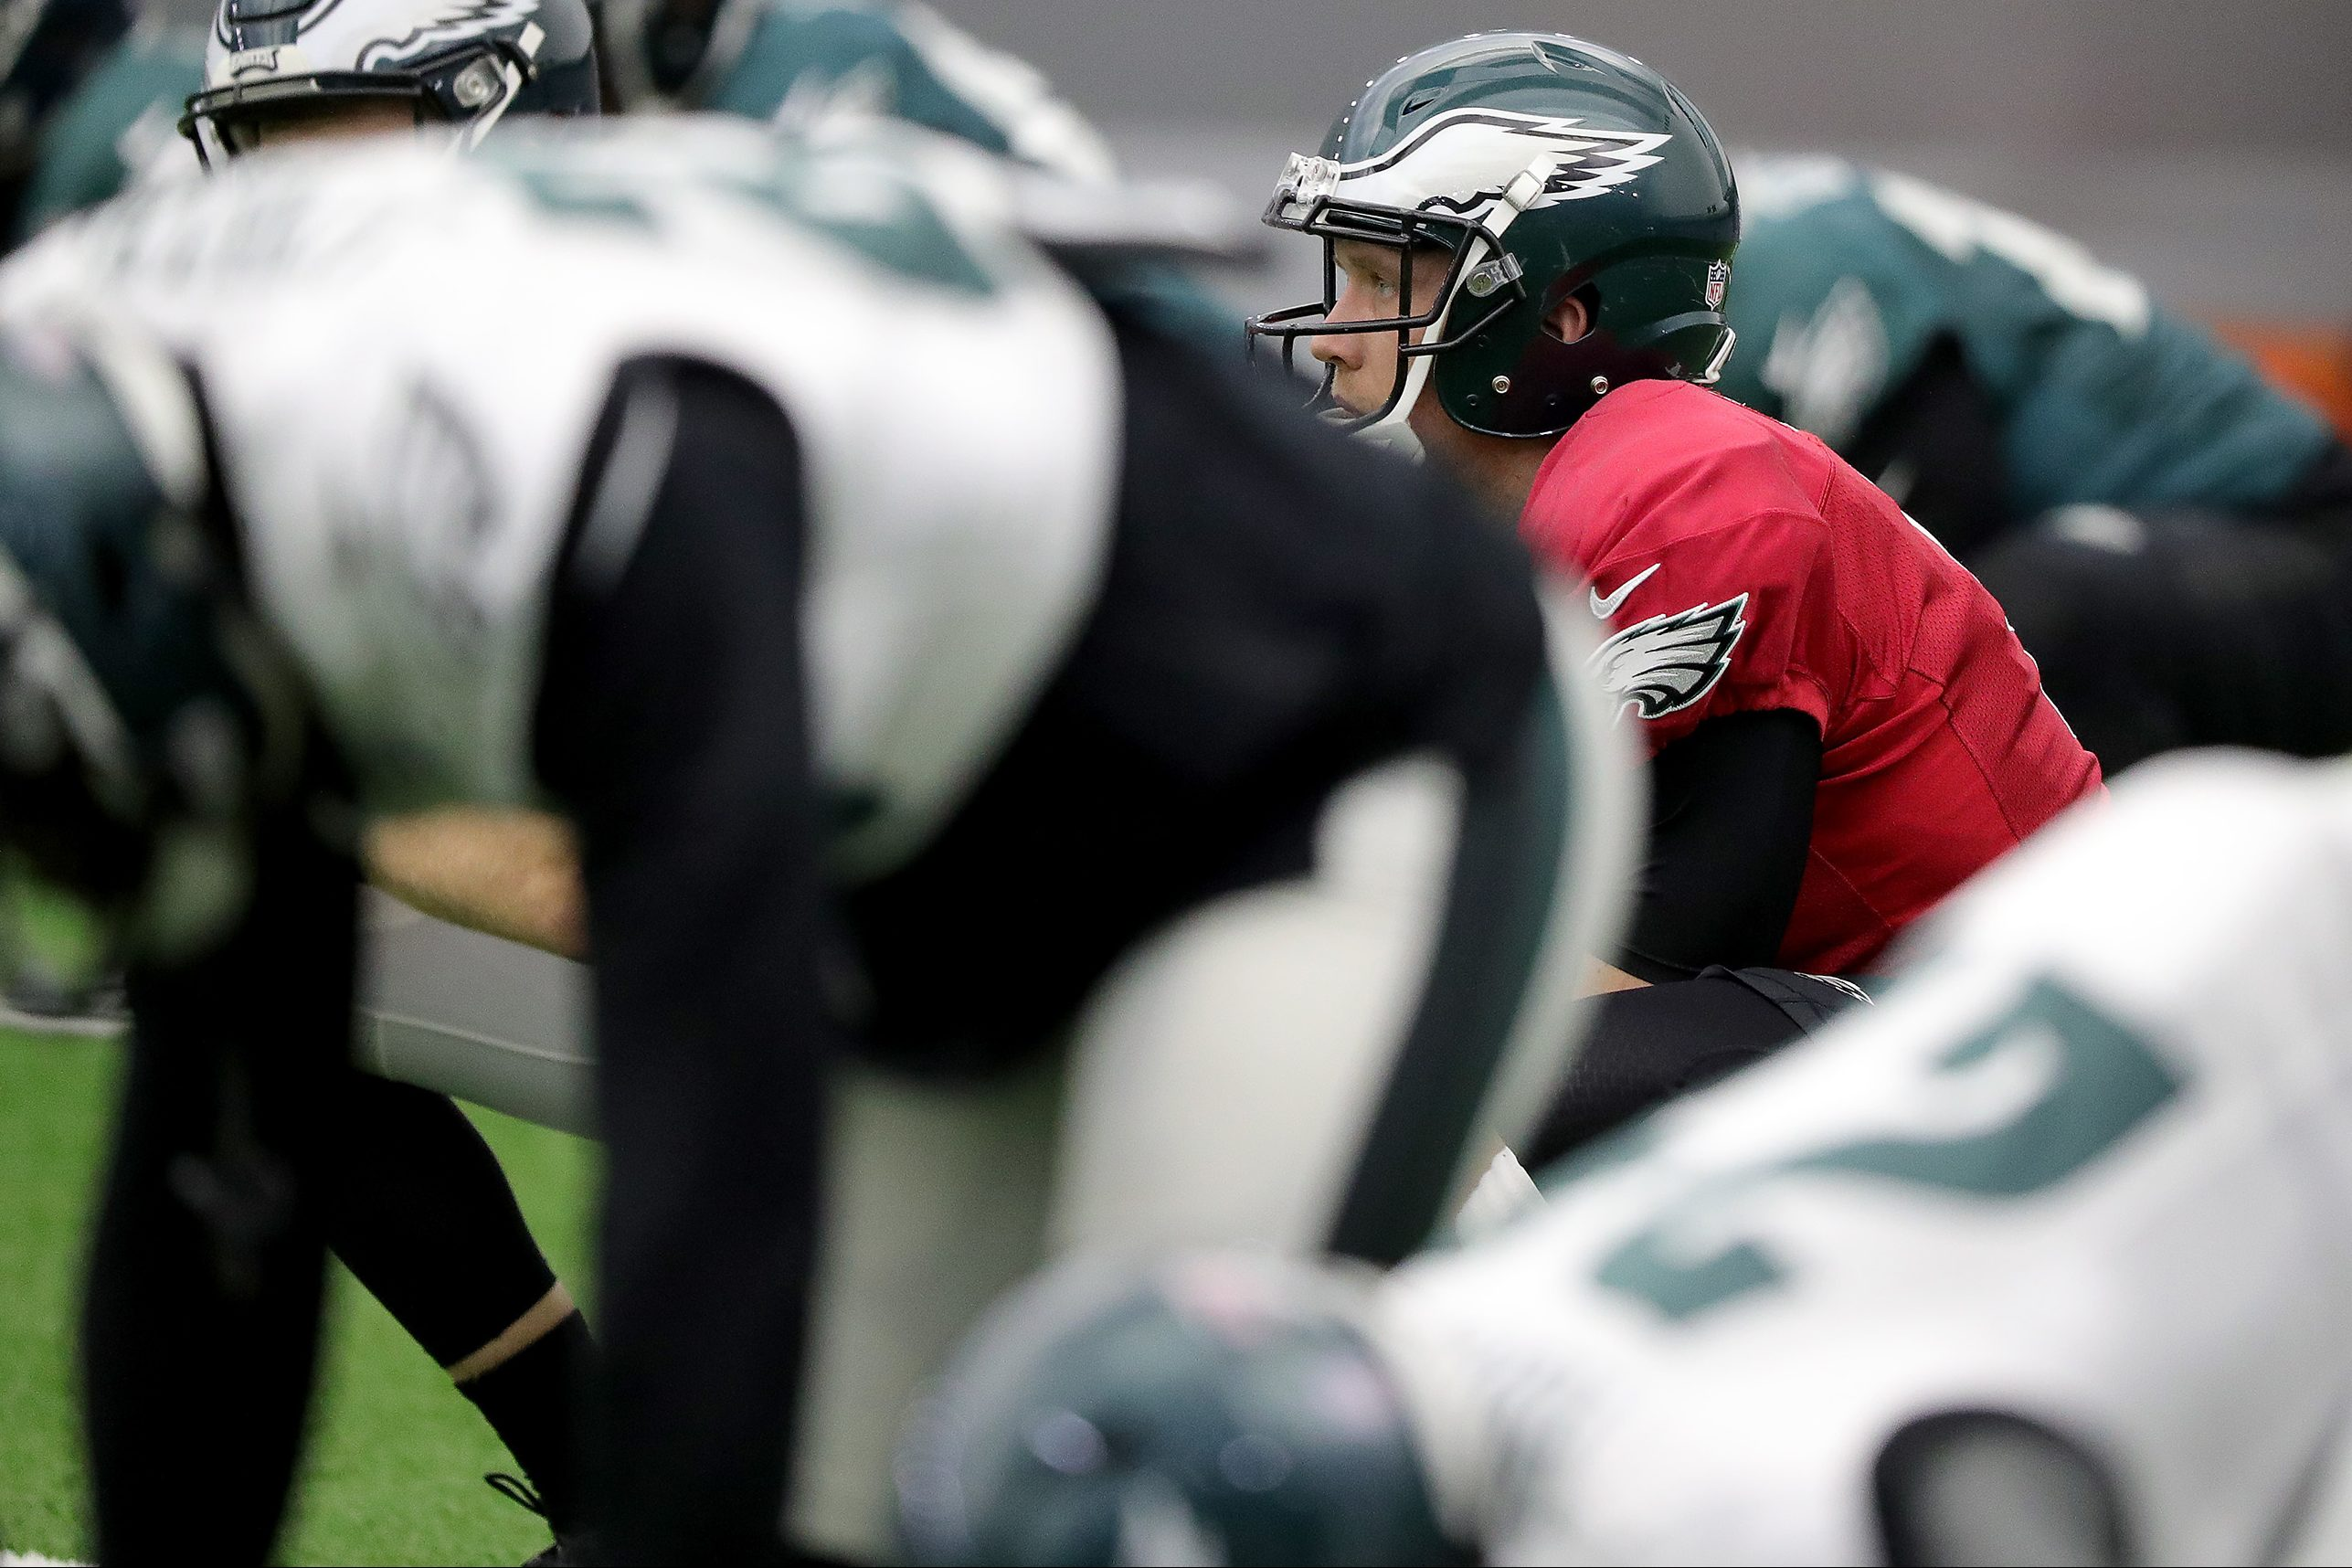 Eagles' Nick Foles, right, warms up as the Philadelphia Eagles practice during the bye week in Philadelphia, PA on January 3, 2018. The Eagles will host a playoff game on Saturday, January 13.